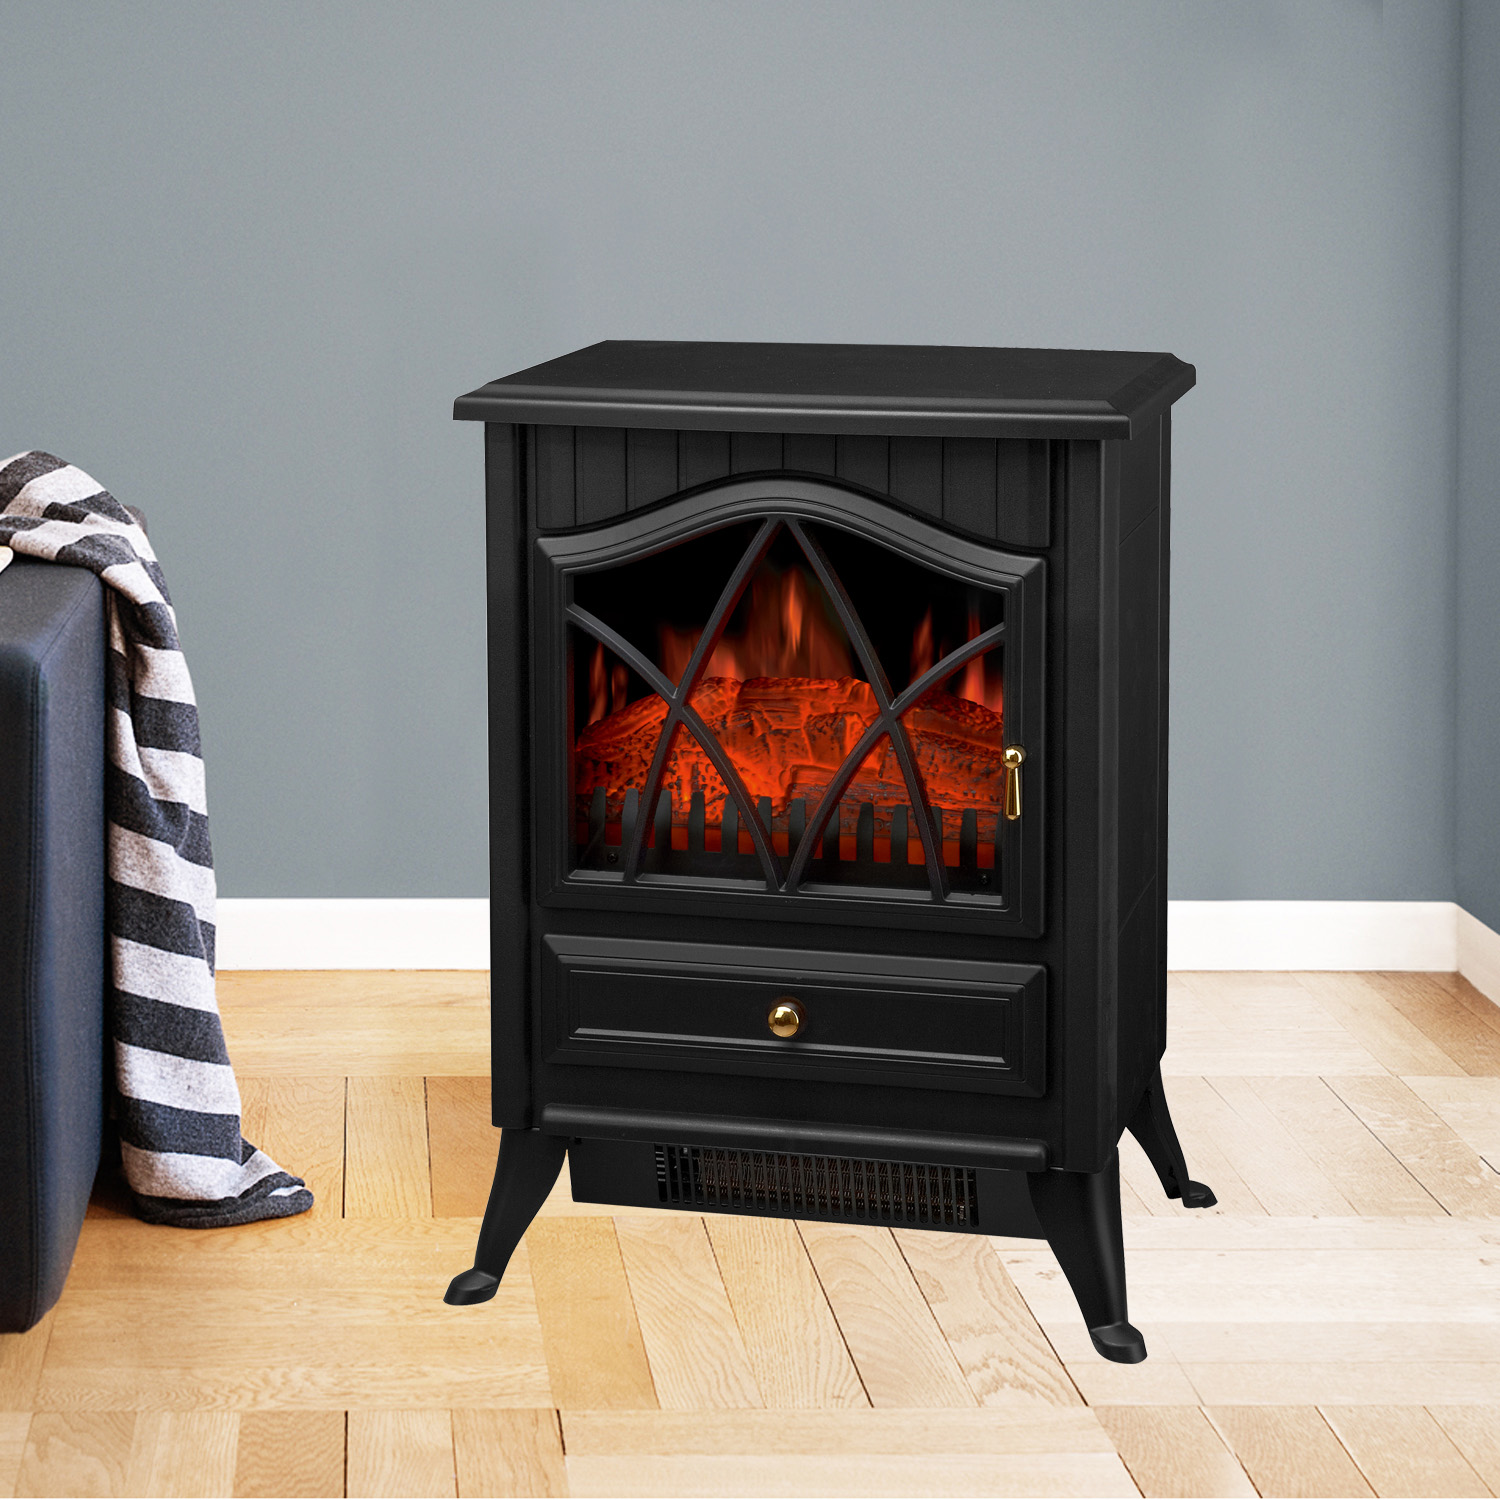 1850w electric fireplace heater fire place stove fan log. Black Bedroom Furniture Sets. Home Design Ideas